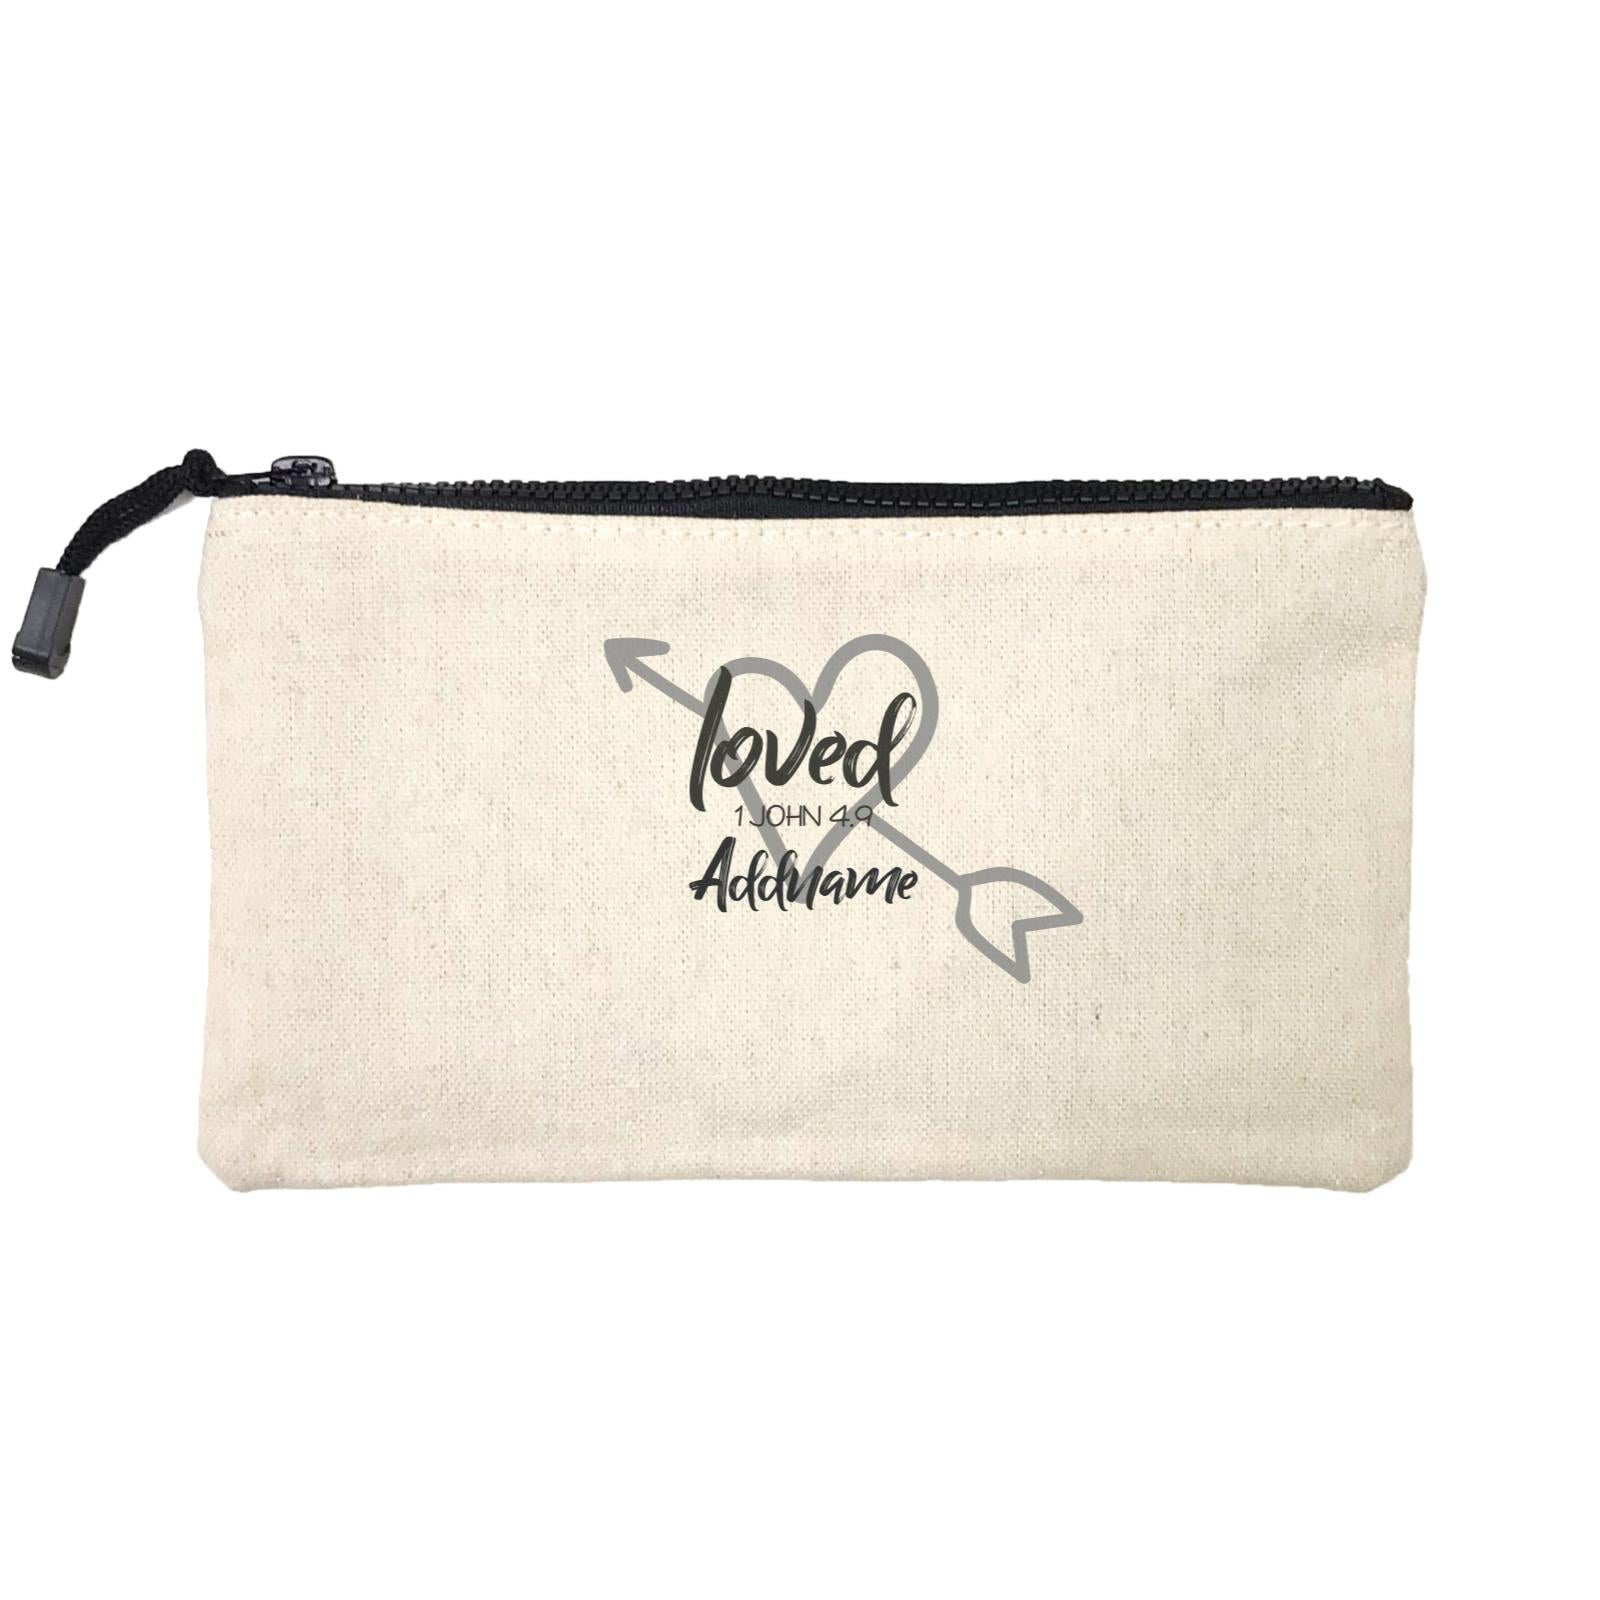 Loved Family Loved With Heart And Arrow 1 John 4.9 Addname Mini Accessories Stationery Pouch